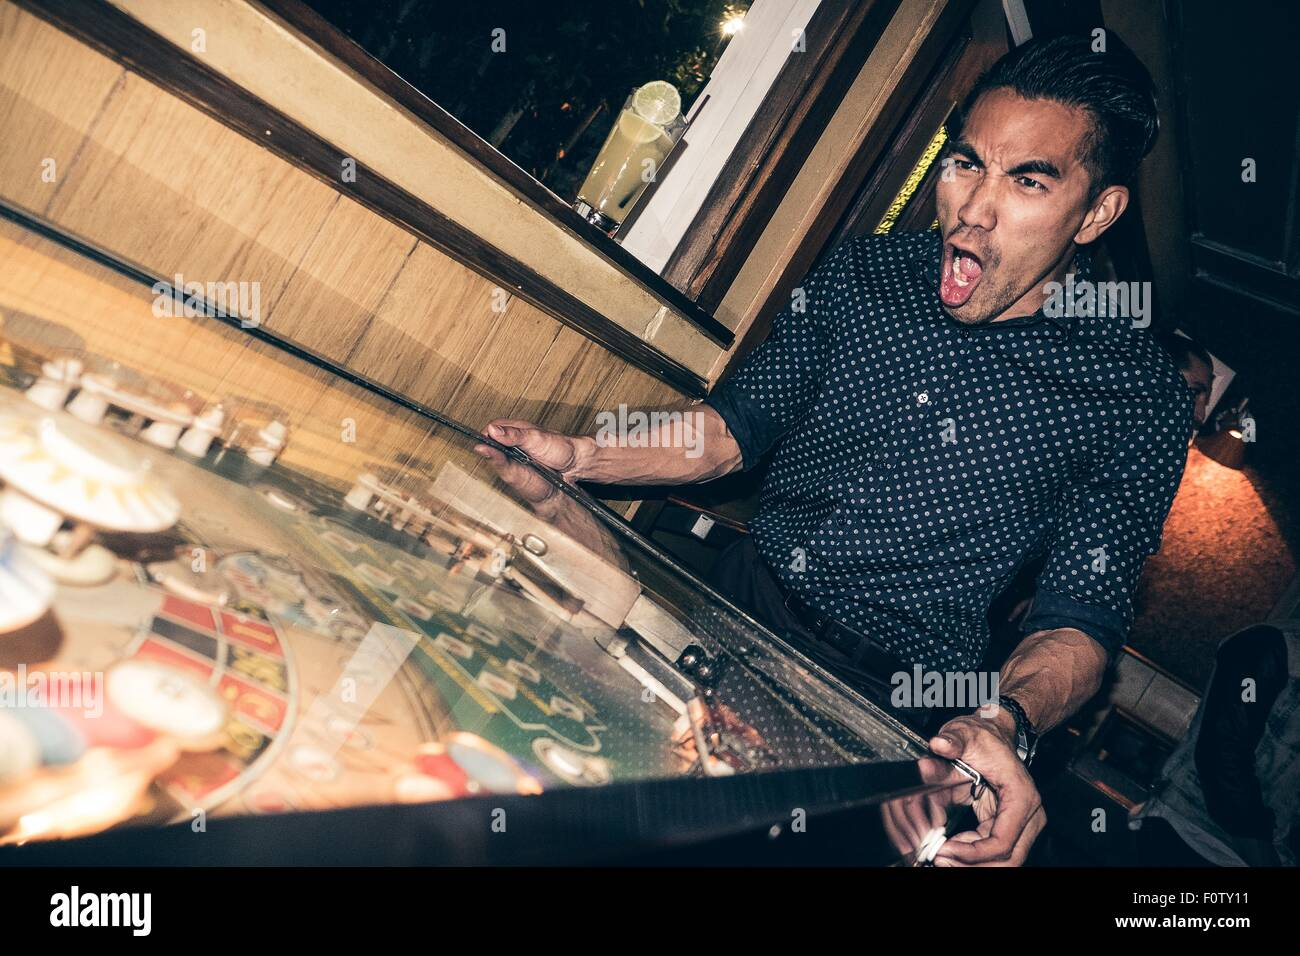 Young man playing pinball in bar, excited expression - Stock Image